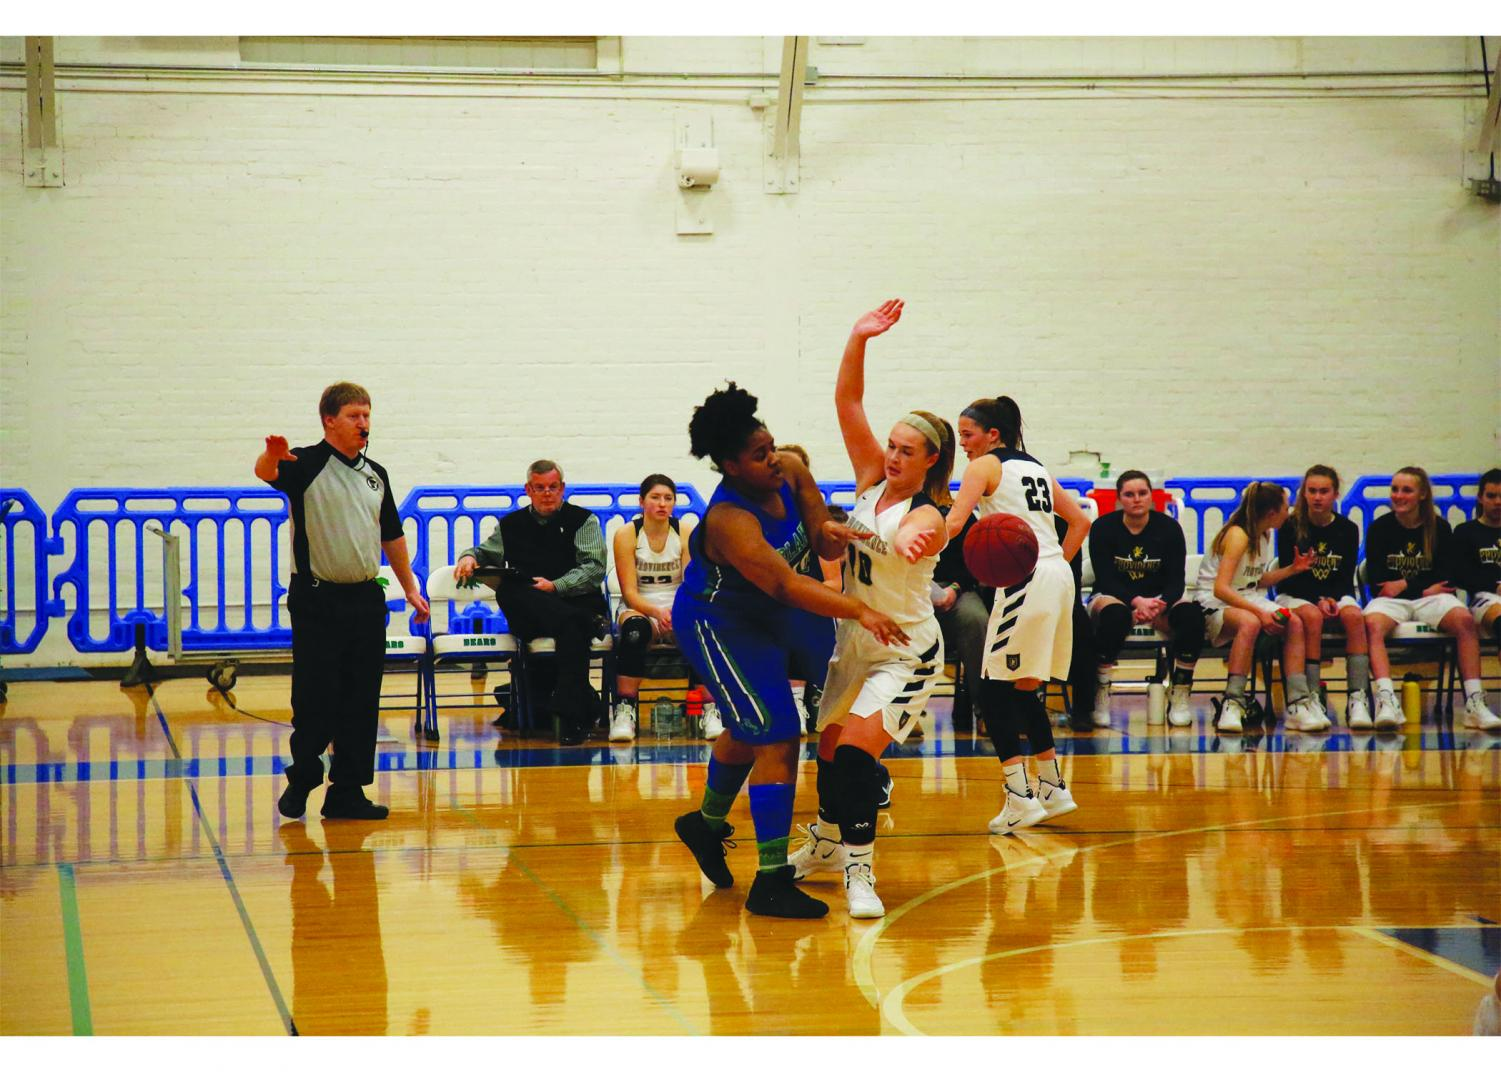 Cheryl Minde '20, the only senior on the team this year, reaches around a defender to pass the ball to her teammate.